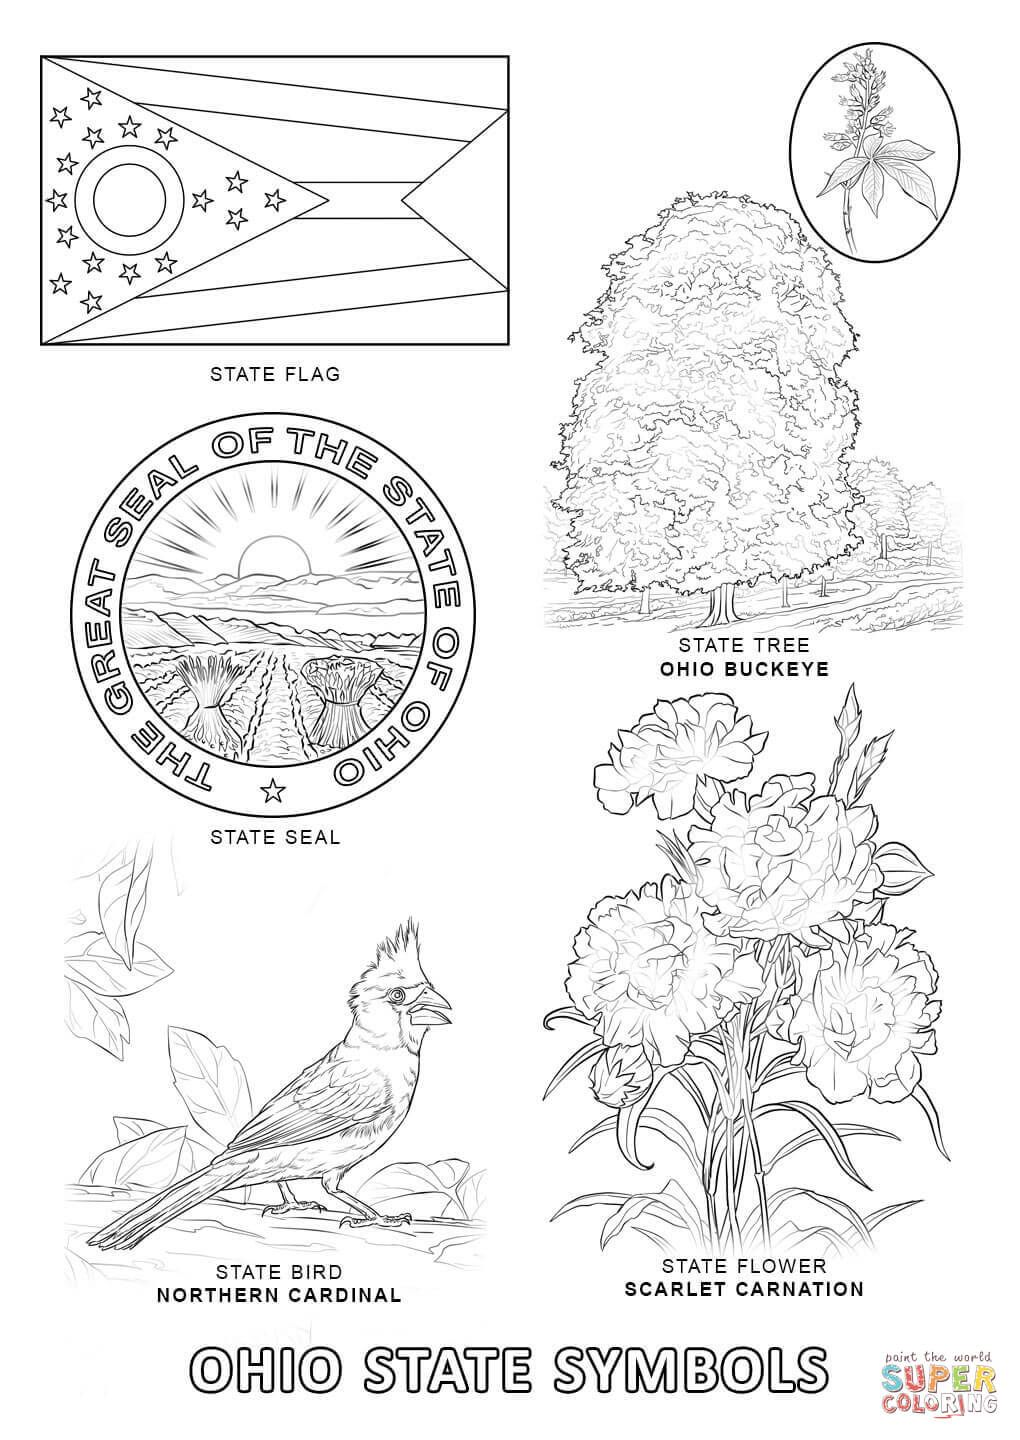 Ohio State Symbols Coloring Page Free Printable Coloring Pages State Symbols Free Printable Coloring Pages Colorado Art